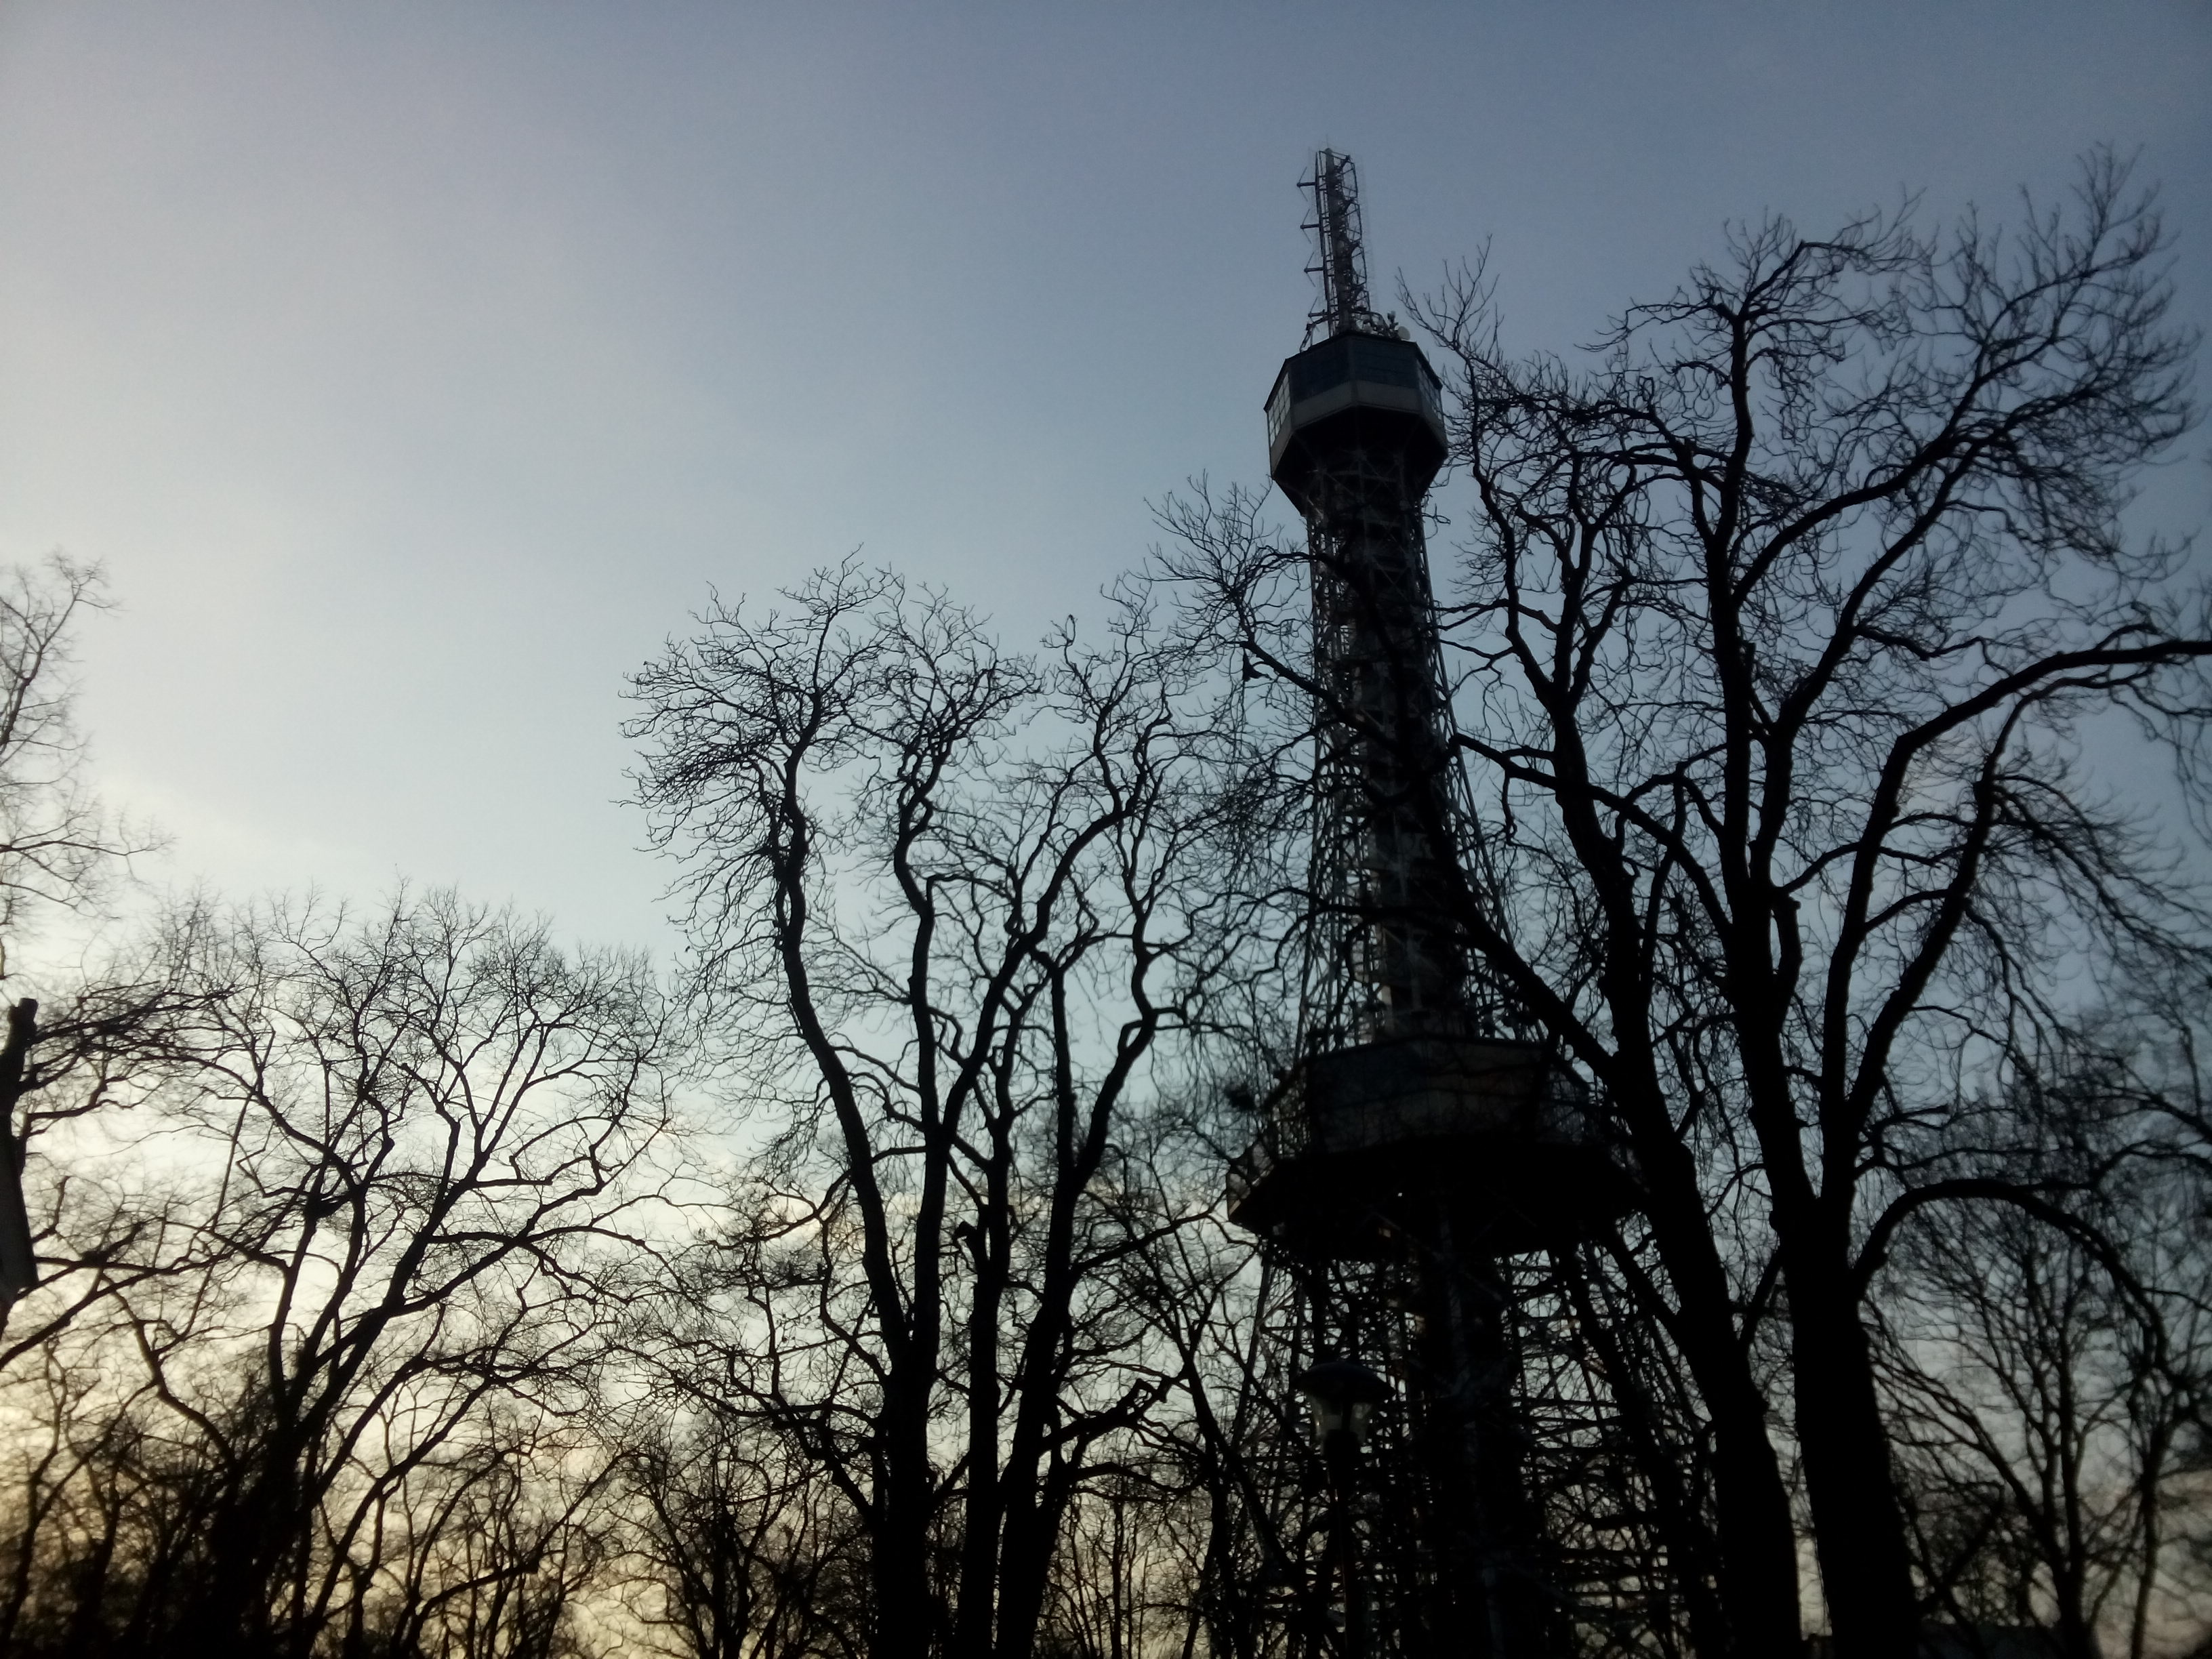 An Eiffel-Tower-like tower silhouetted against a dusky blue sky along with spindly trees